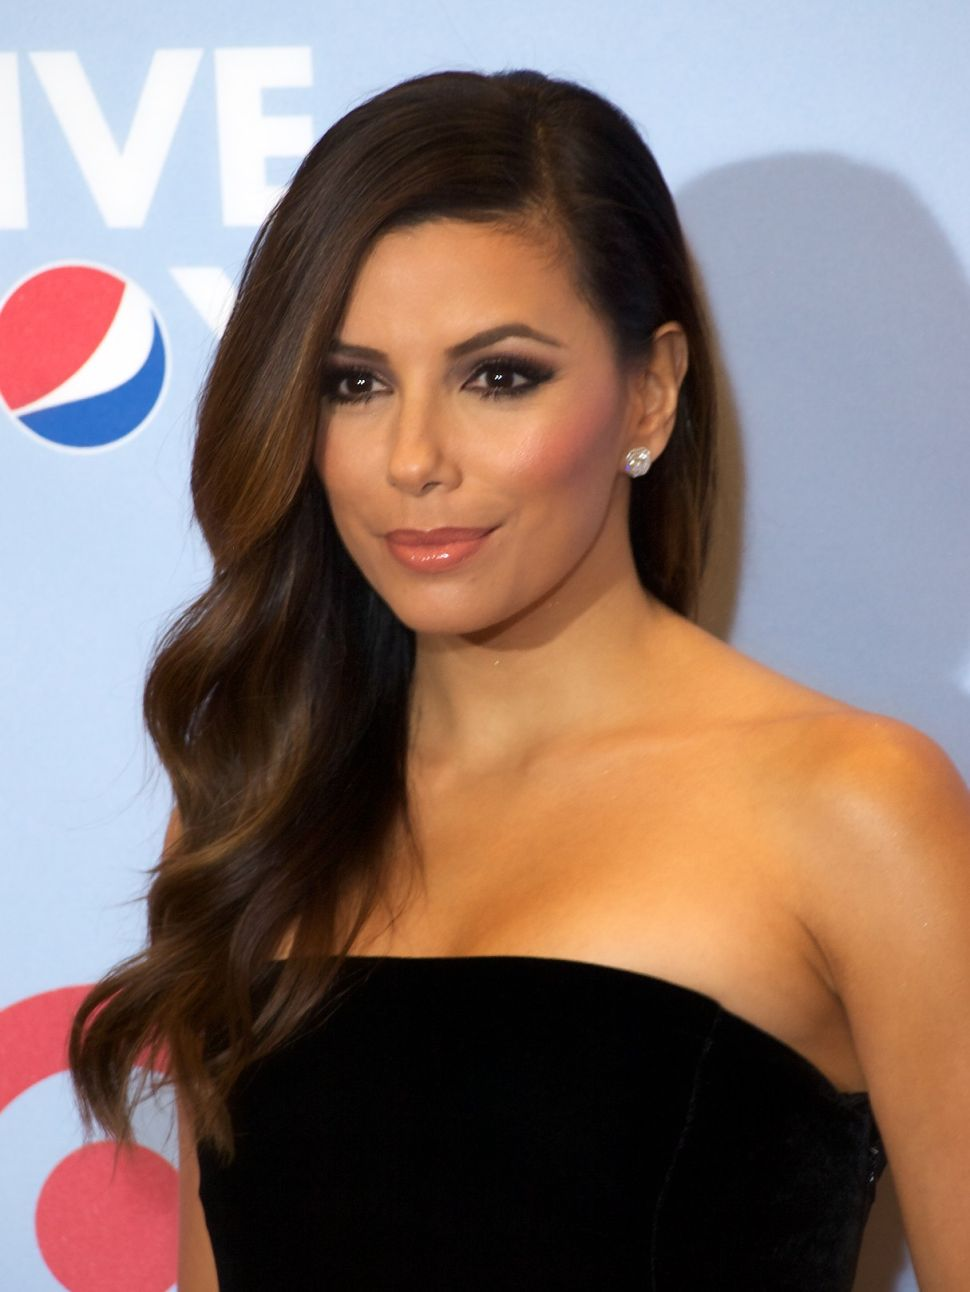 Eva Longoria Claims Apple Store Employees Contacted Her Directly to Tell Her They're Fans